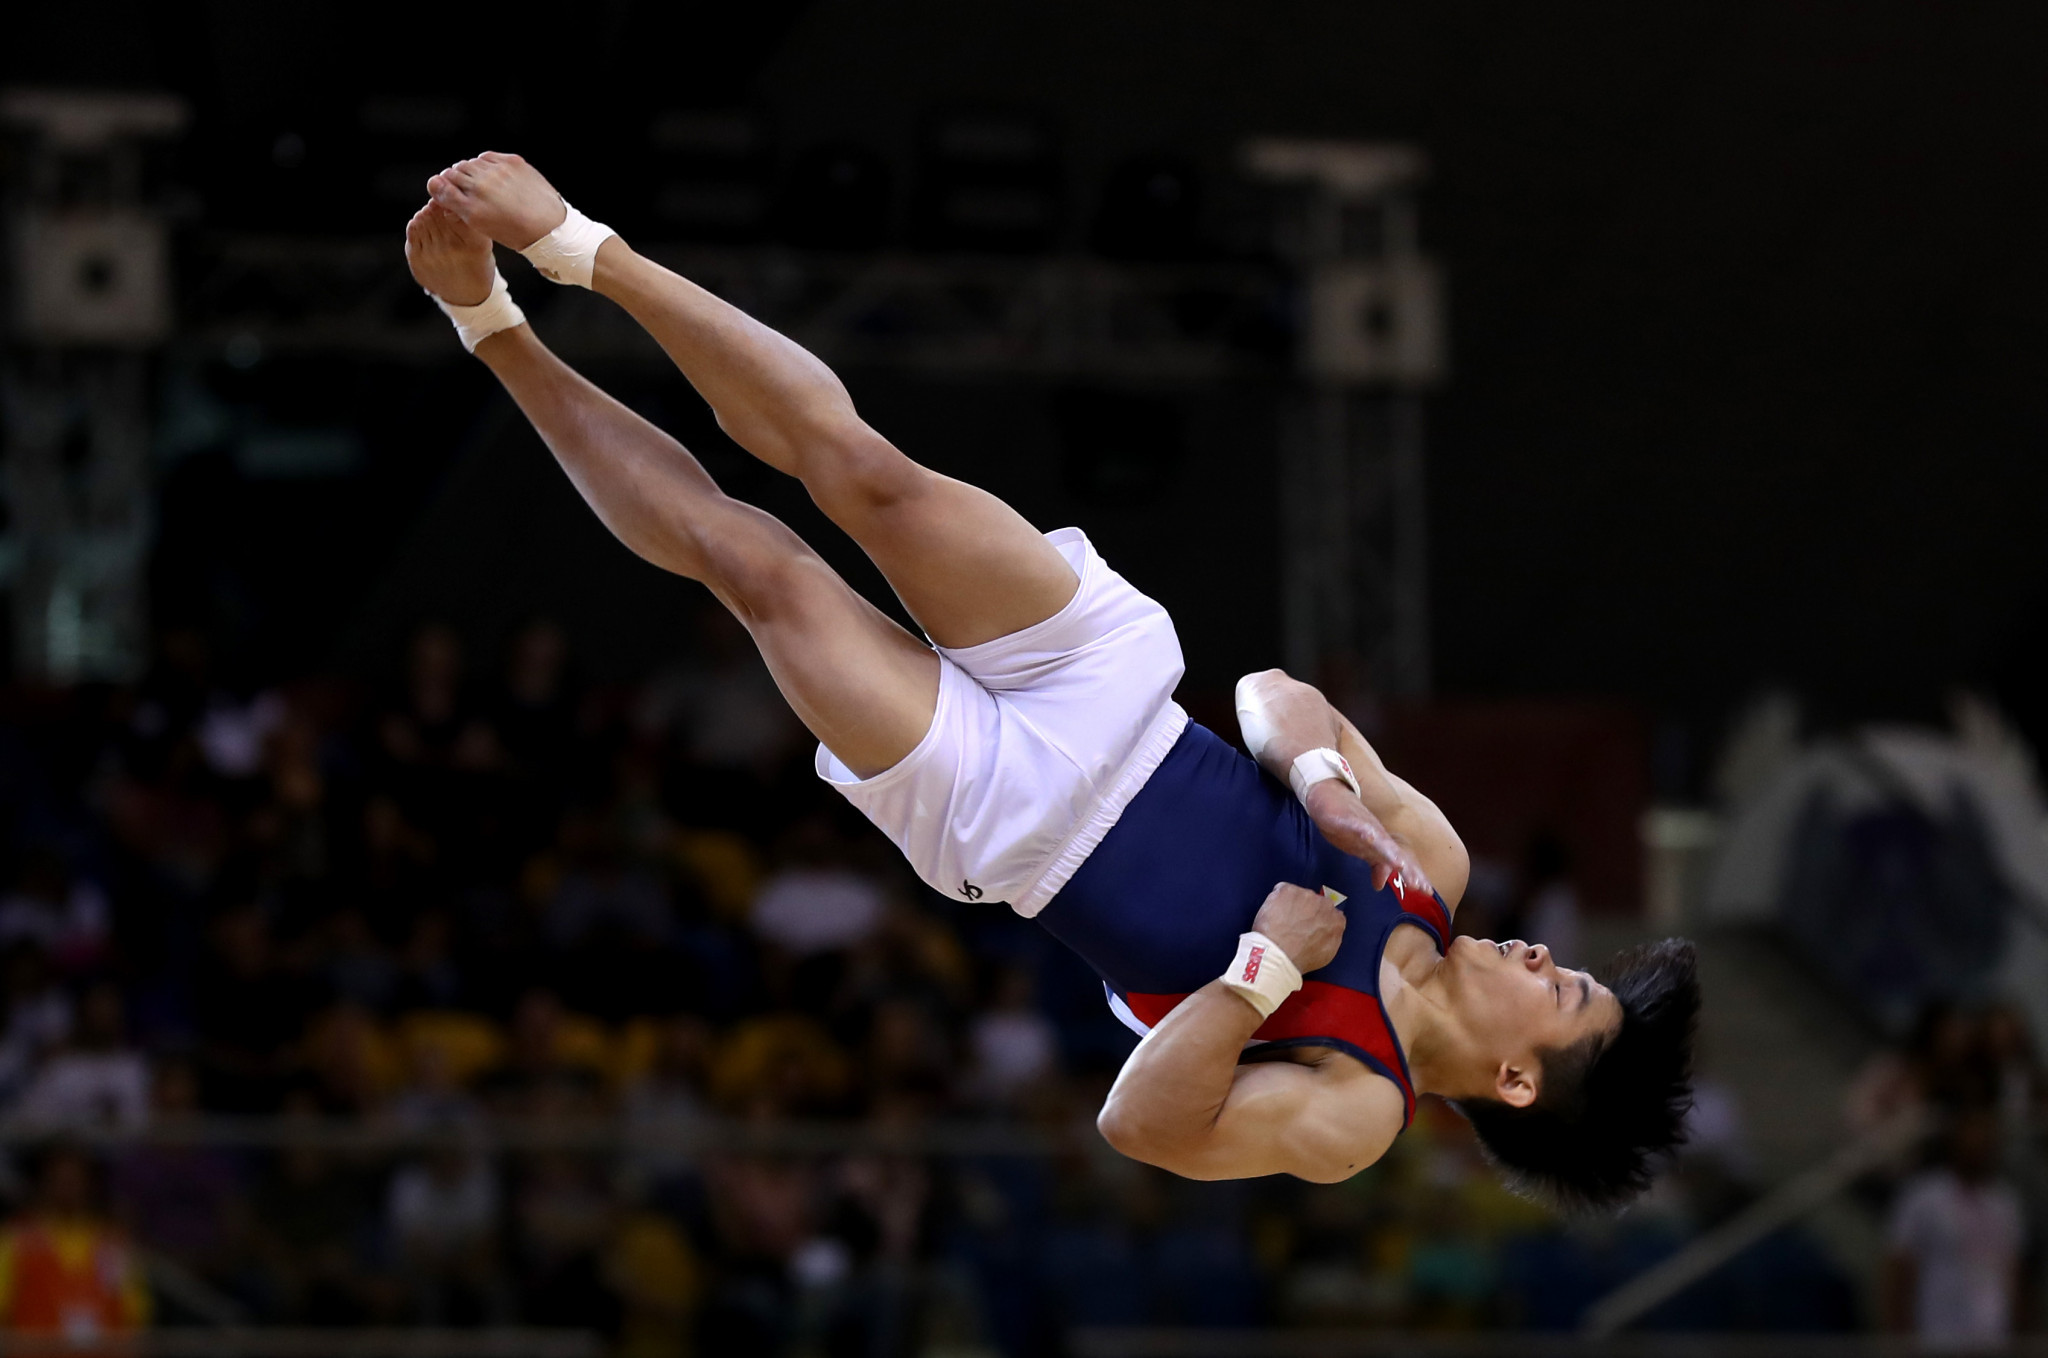 Carlos Edriel Yulo of The Philippines claimed victory in the men's floor event ©Getty Images